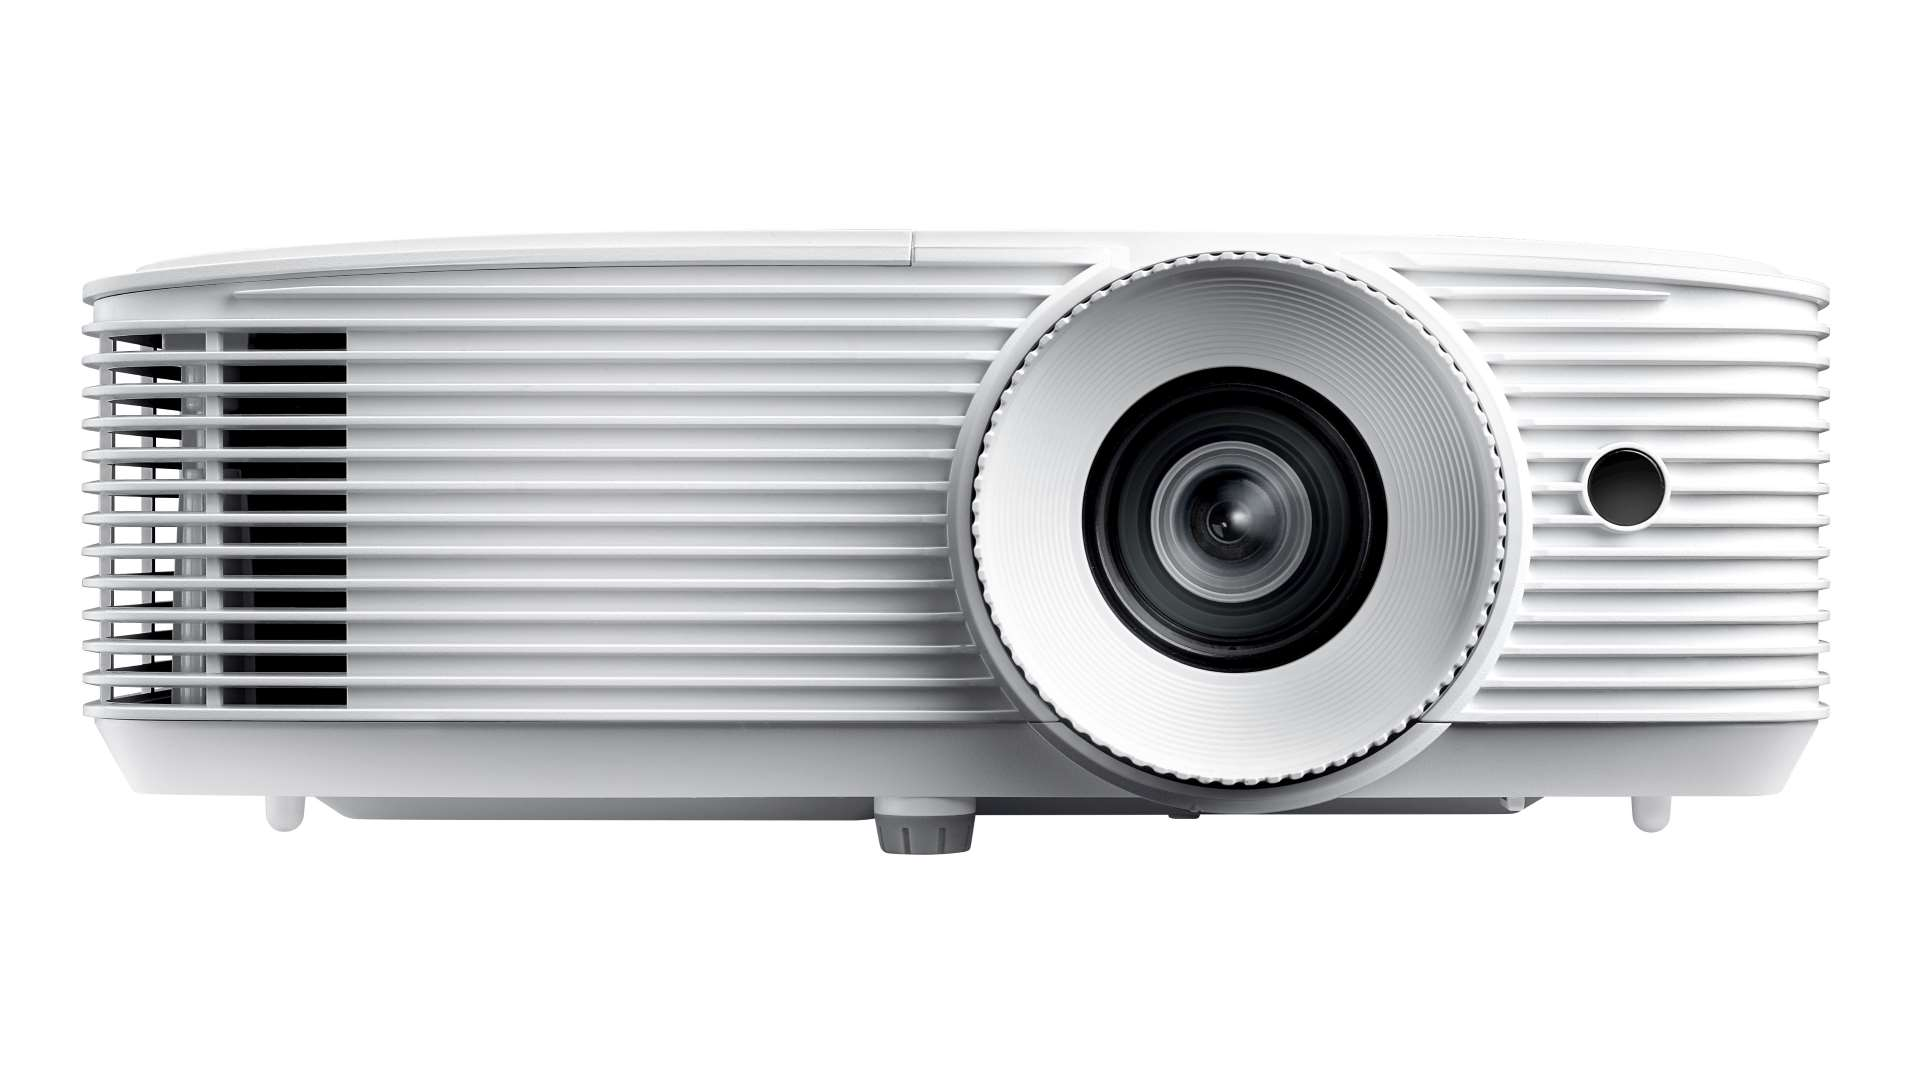 Optoma HD29H review: the best gaming projector thanks to its low